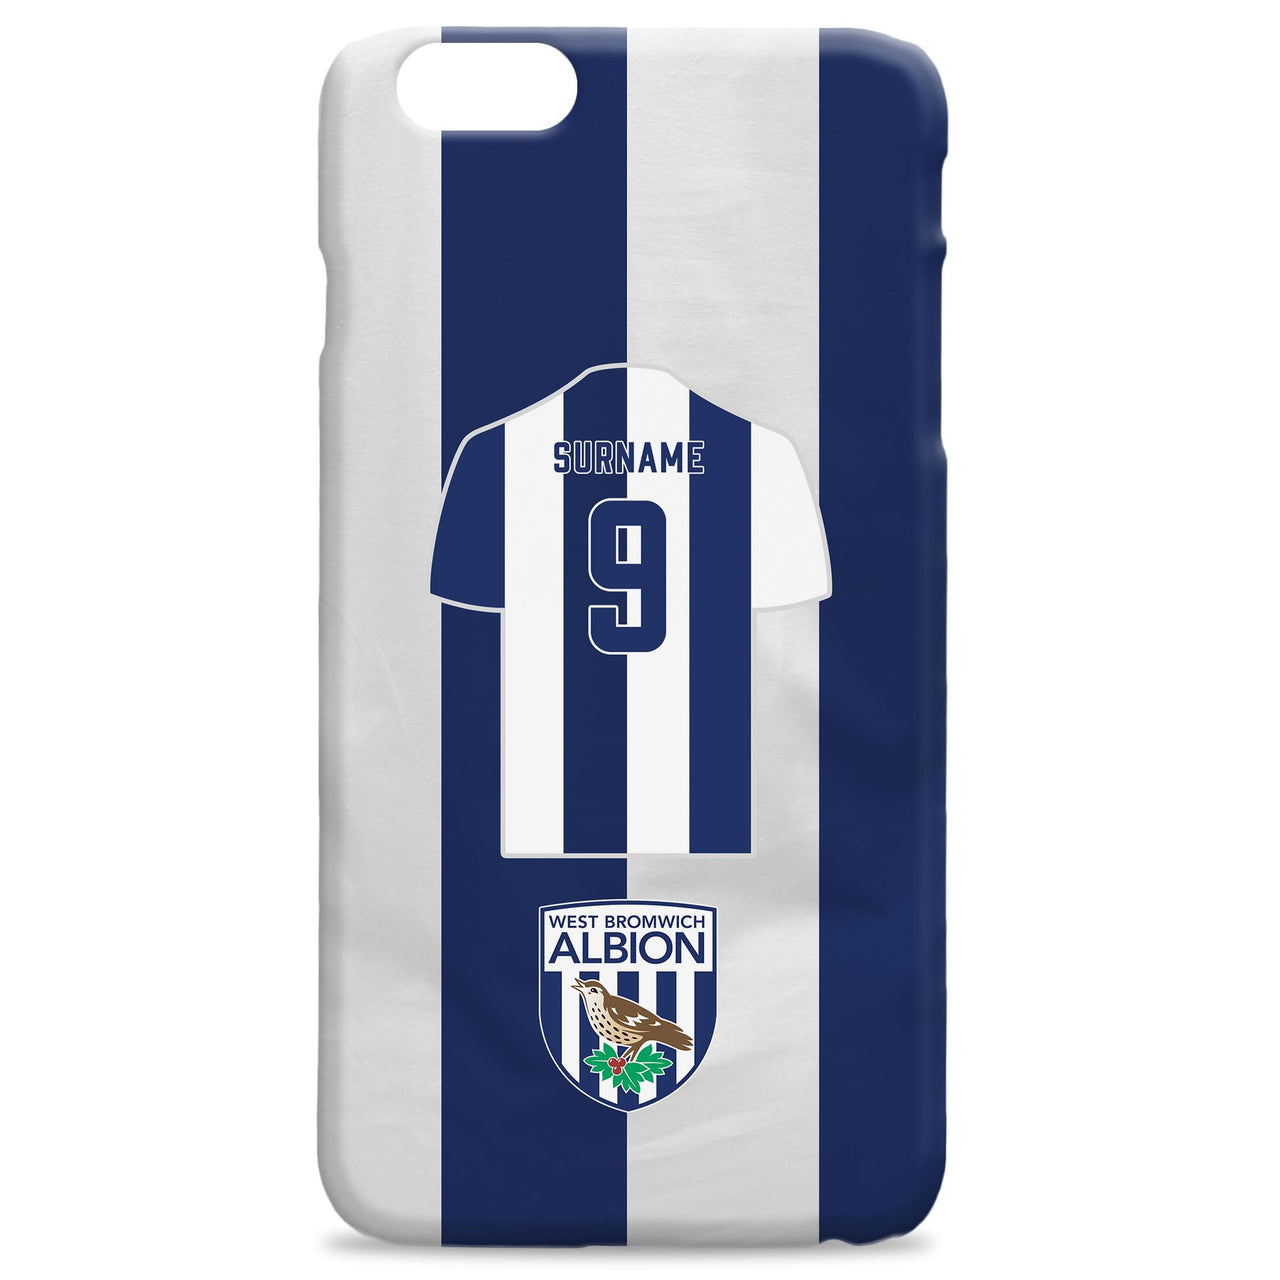 West Bromwich Albion FC Shirt Hard Back Phone Case, Gifts